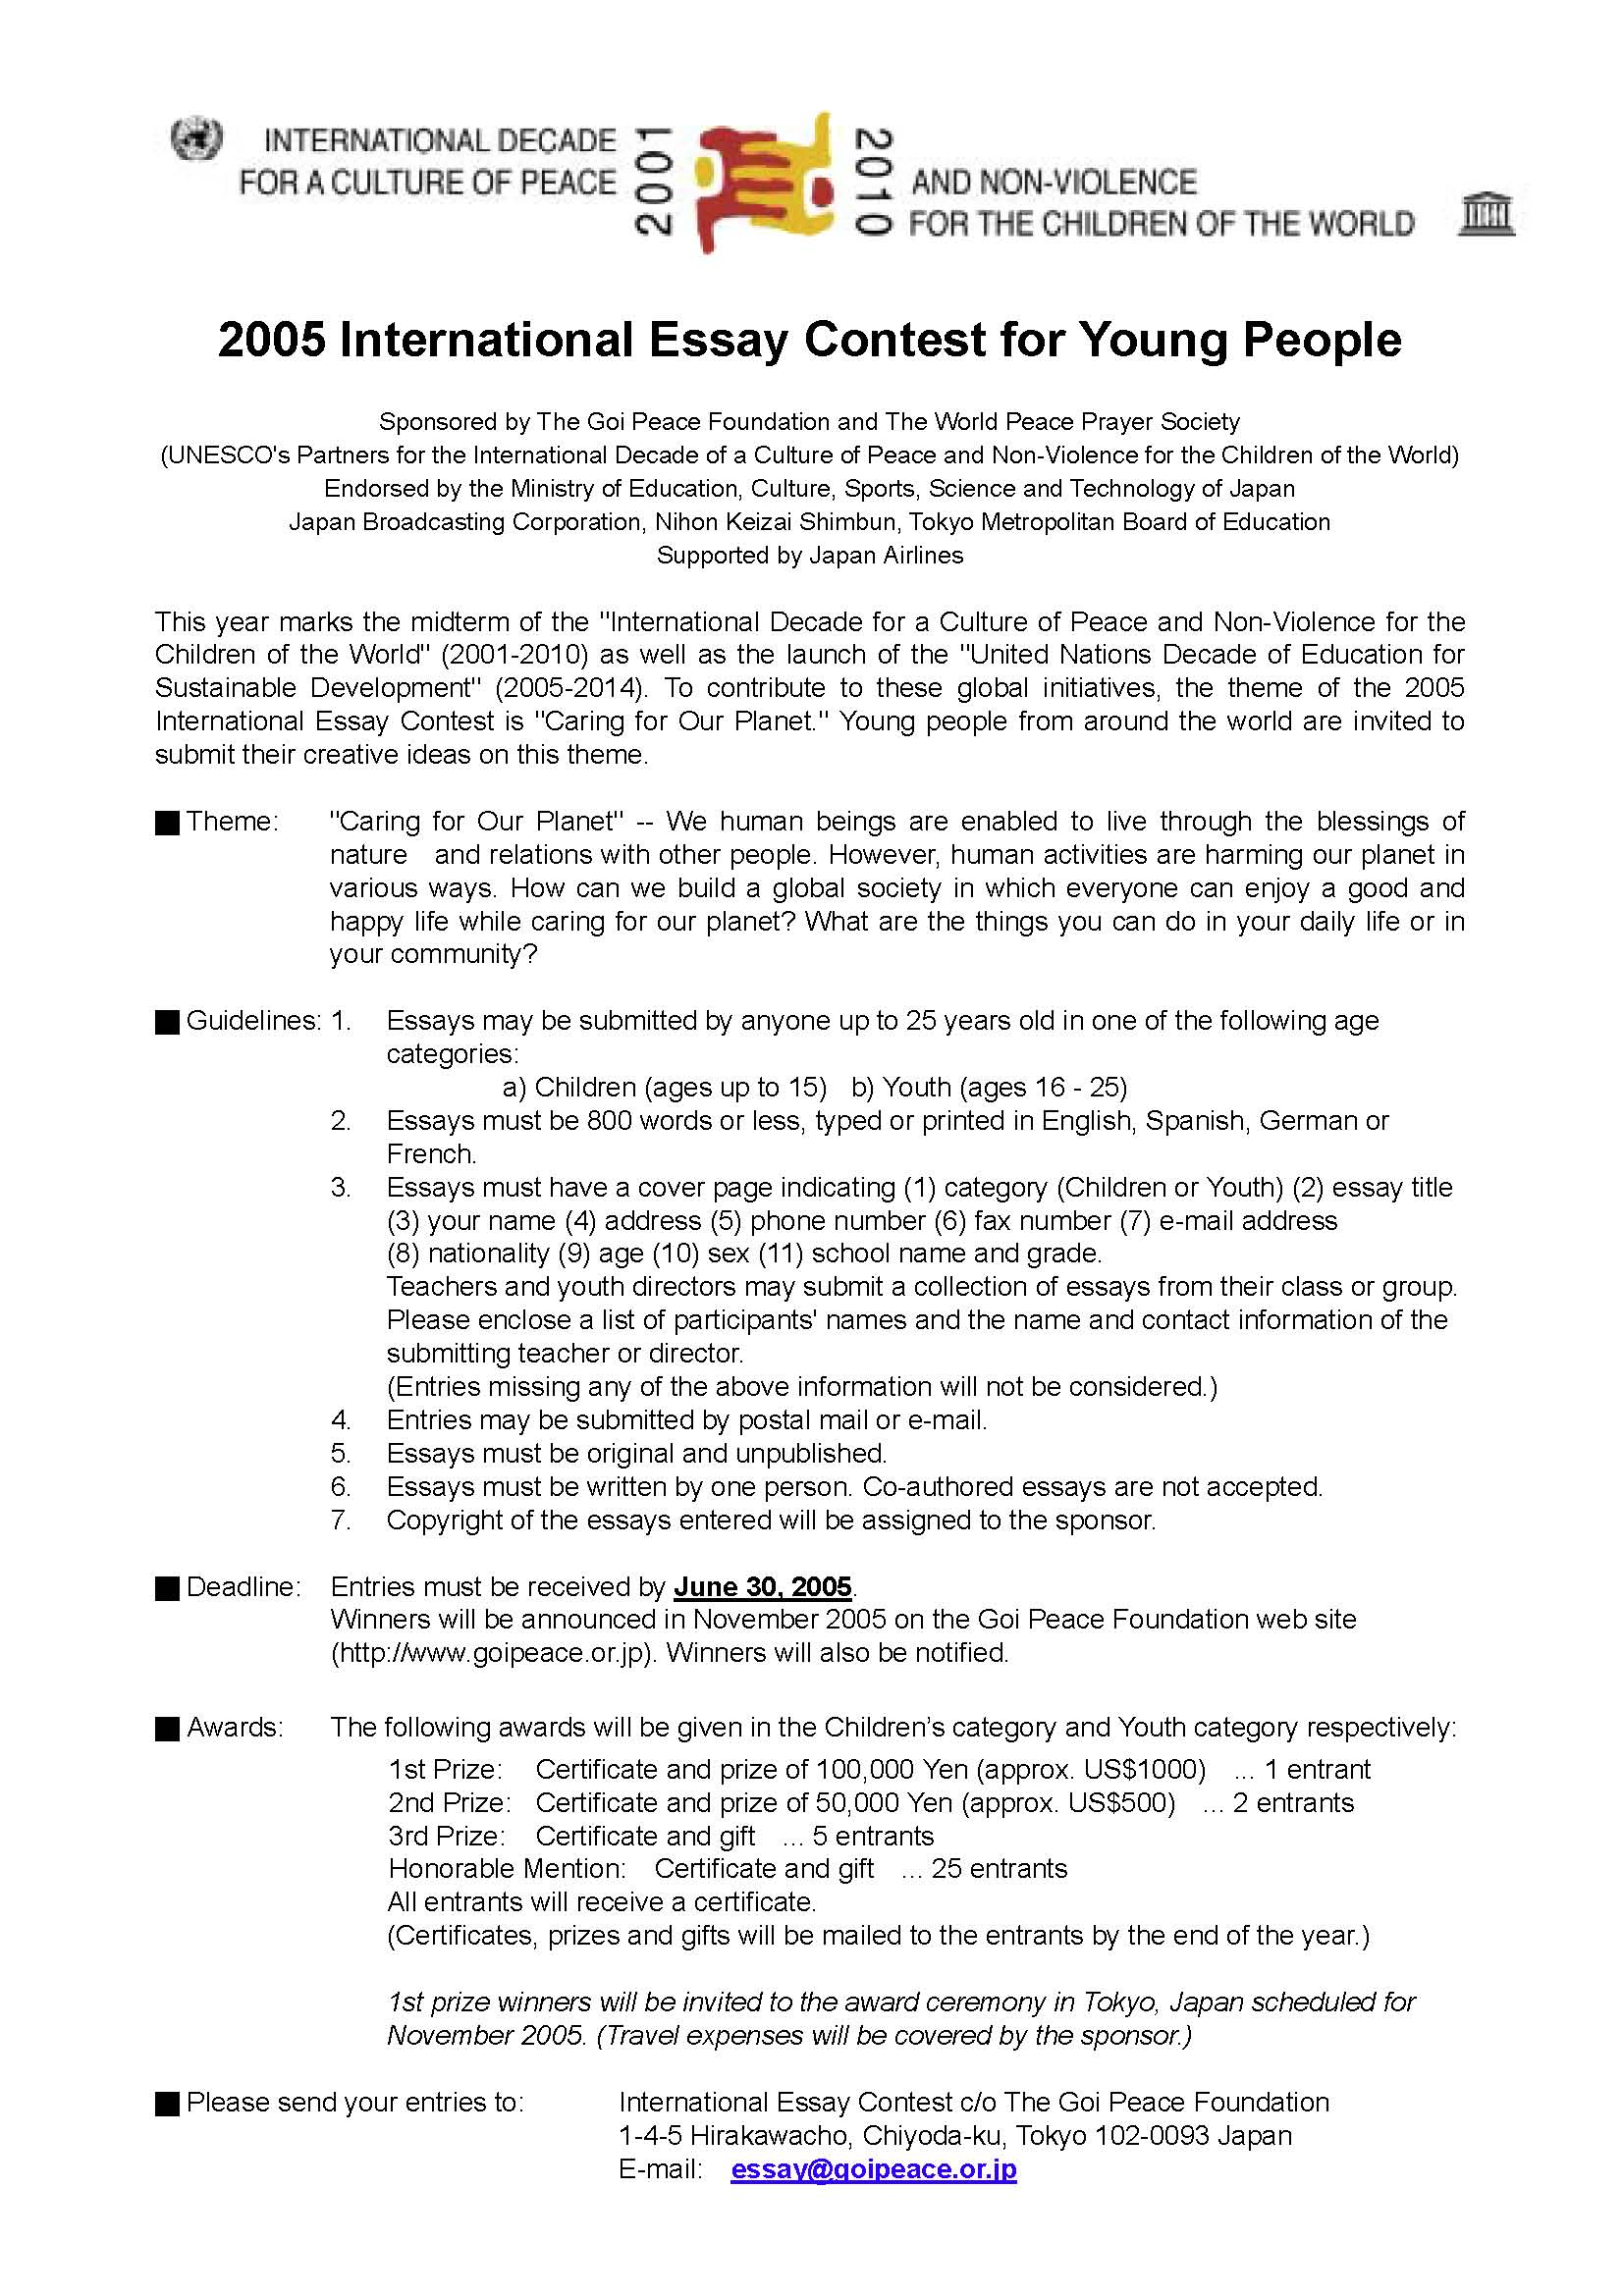 Short Essay On Air Pollution  Nhs Essay Examples also Food Security In India Essay Past Contests  The Goi Peace Foundation Language And Identity Essay